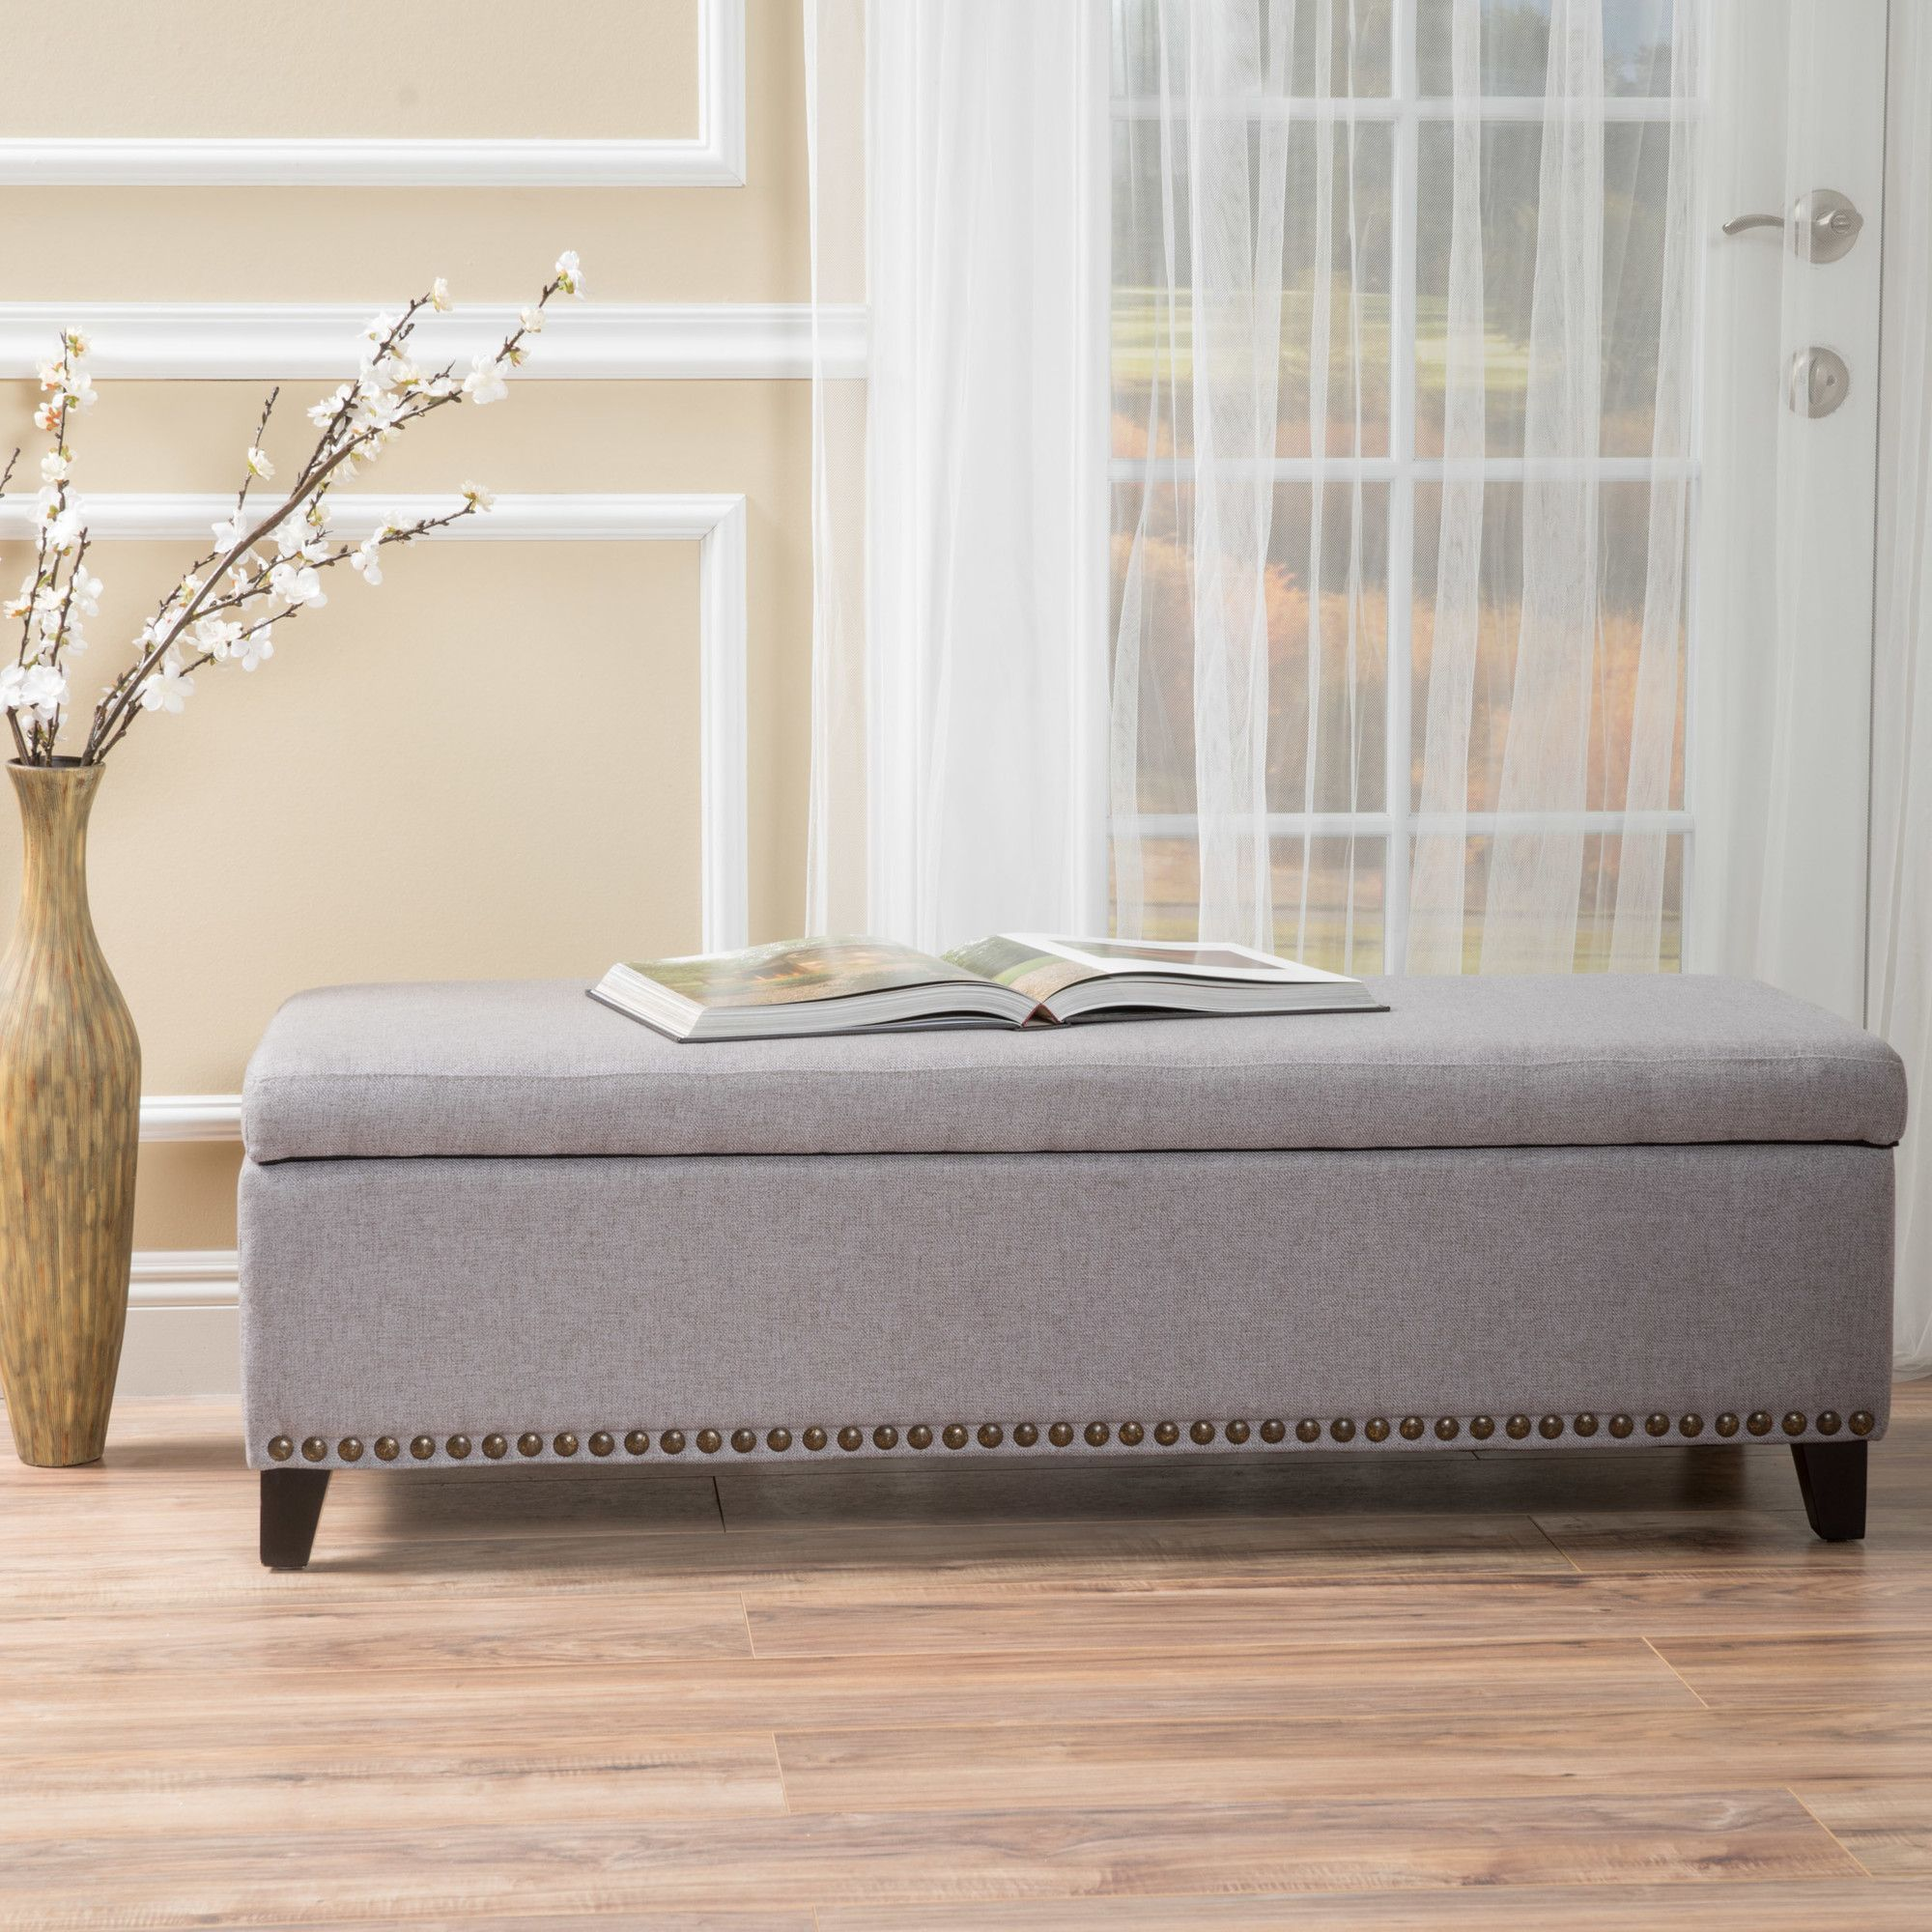 Stipe Storage Bench Entryway Bench | Products | Pinterest